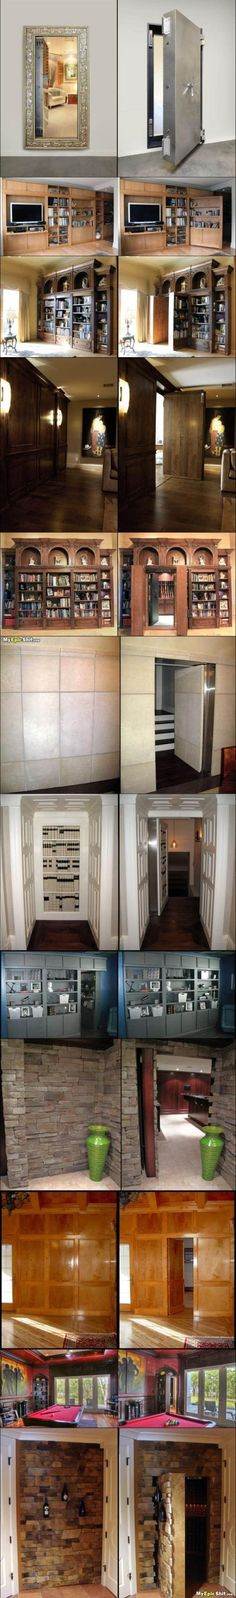 The secret room ~ i LOVE secret rooms or hiding spots. definitely going to have one in my house someday :D